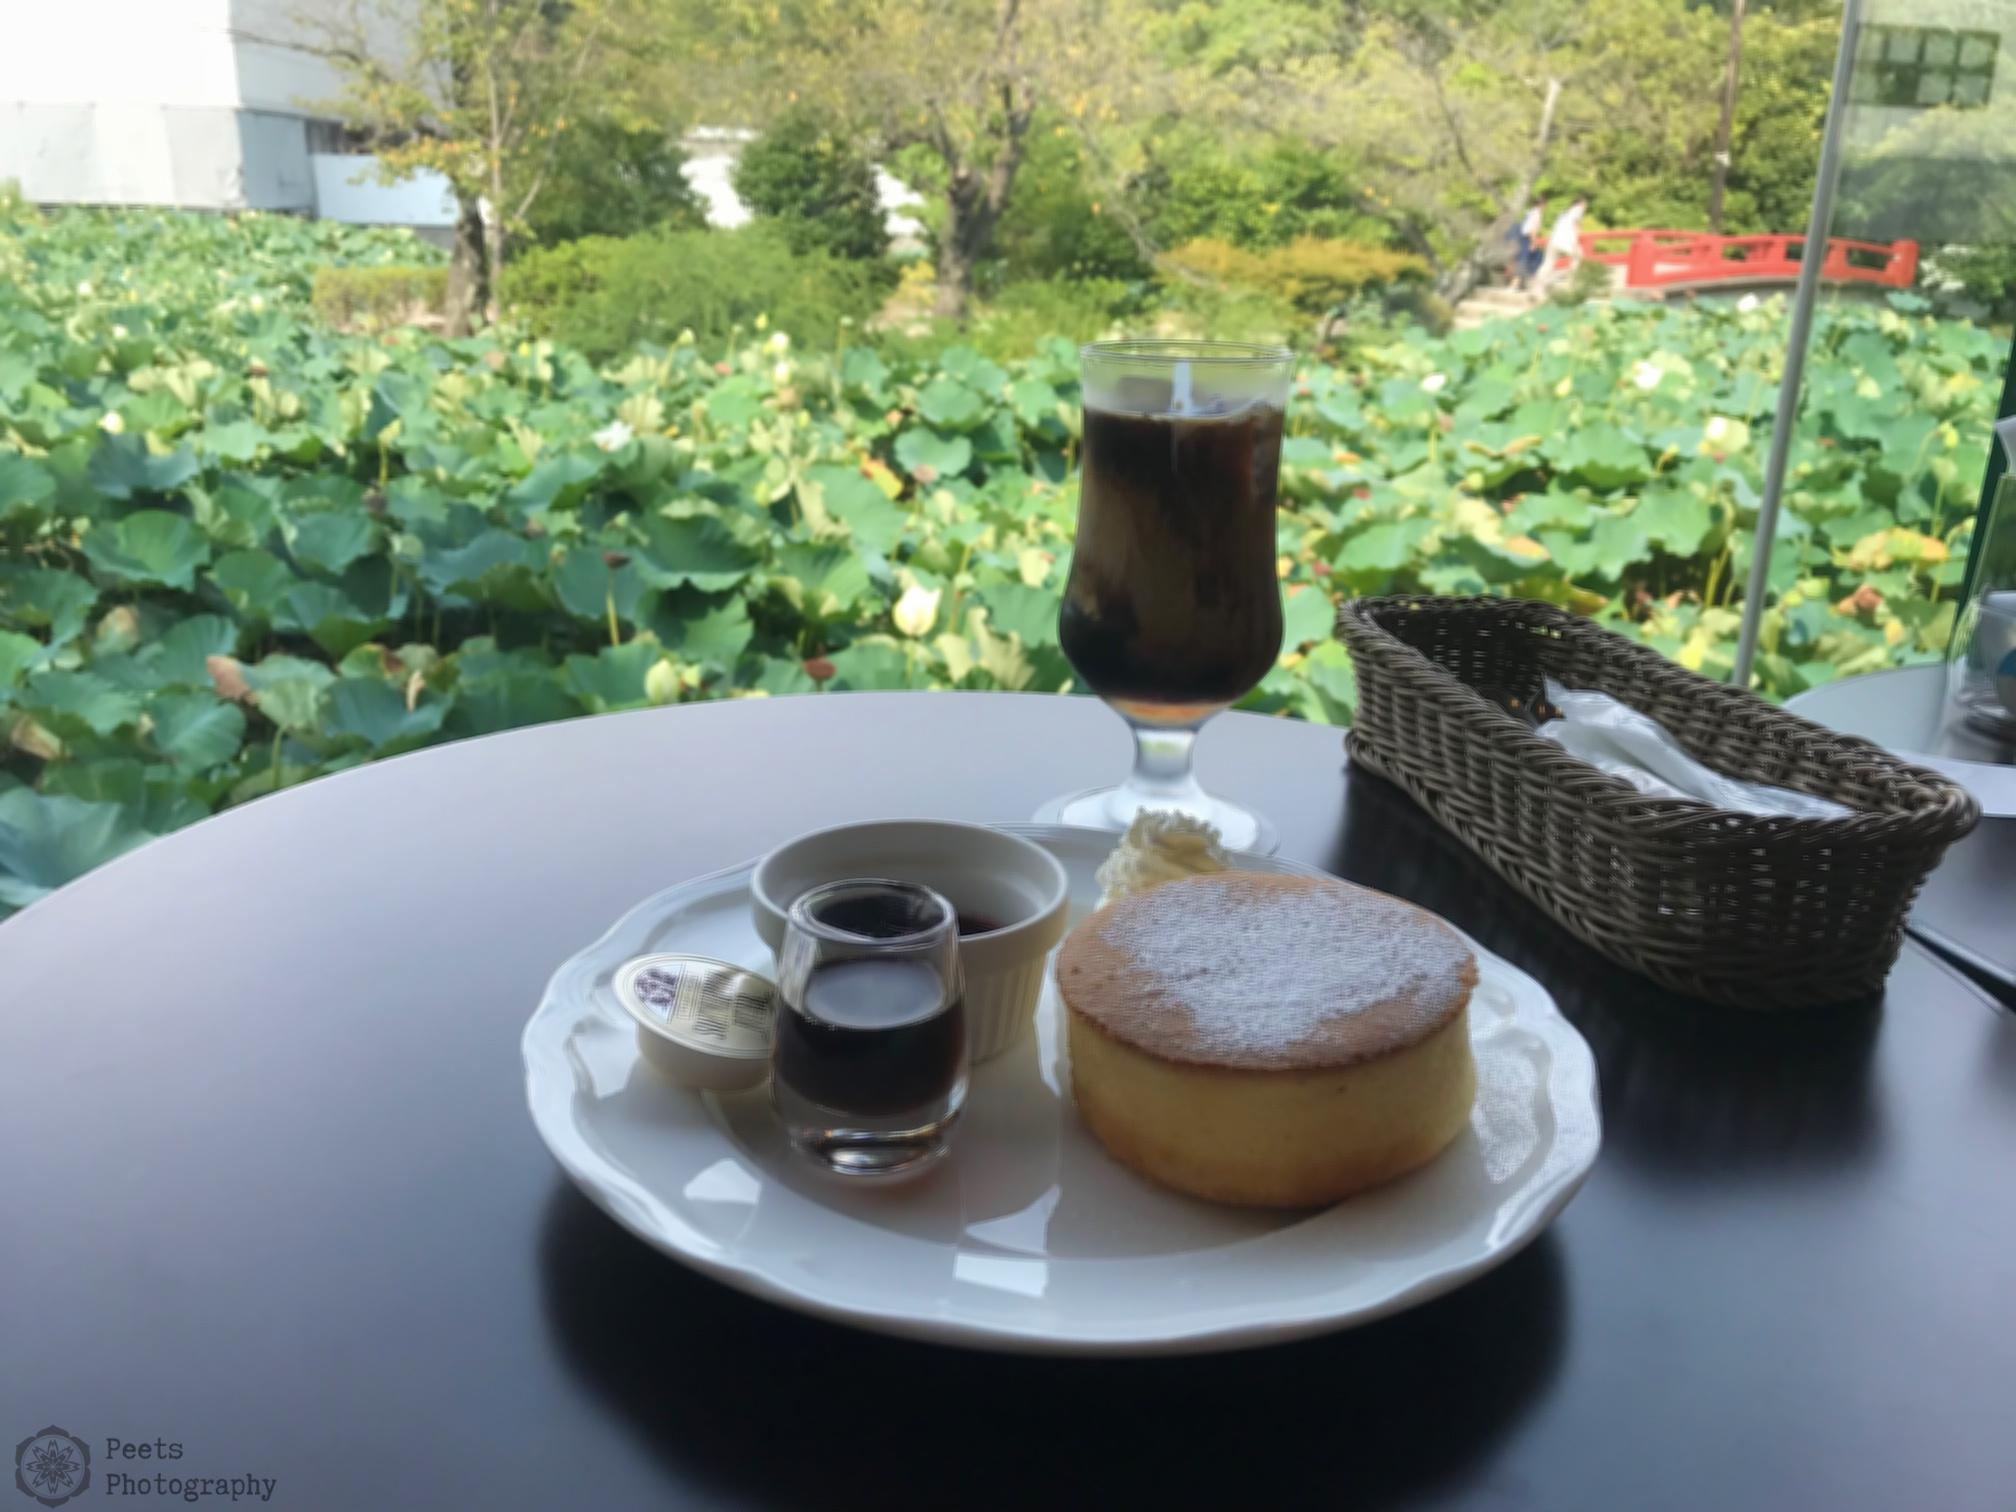 A picture of a plate with a muffin and a cup of coffee